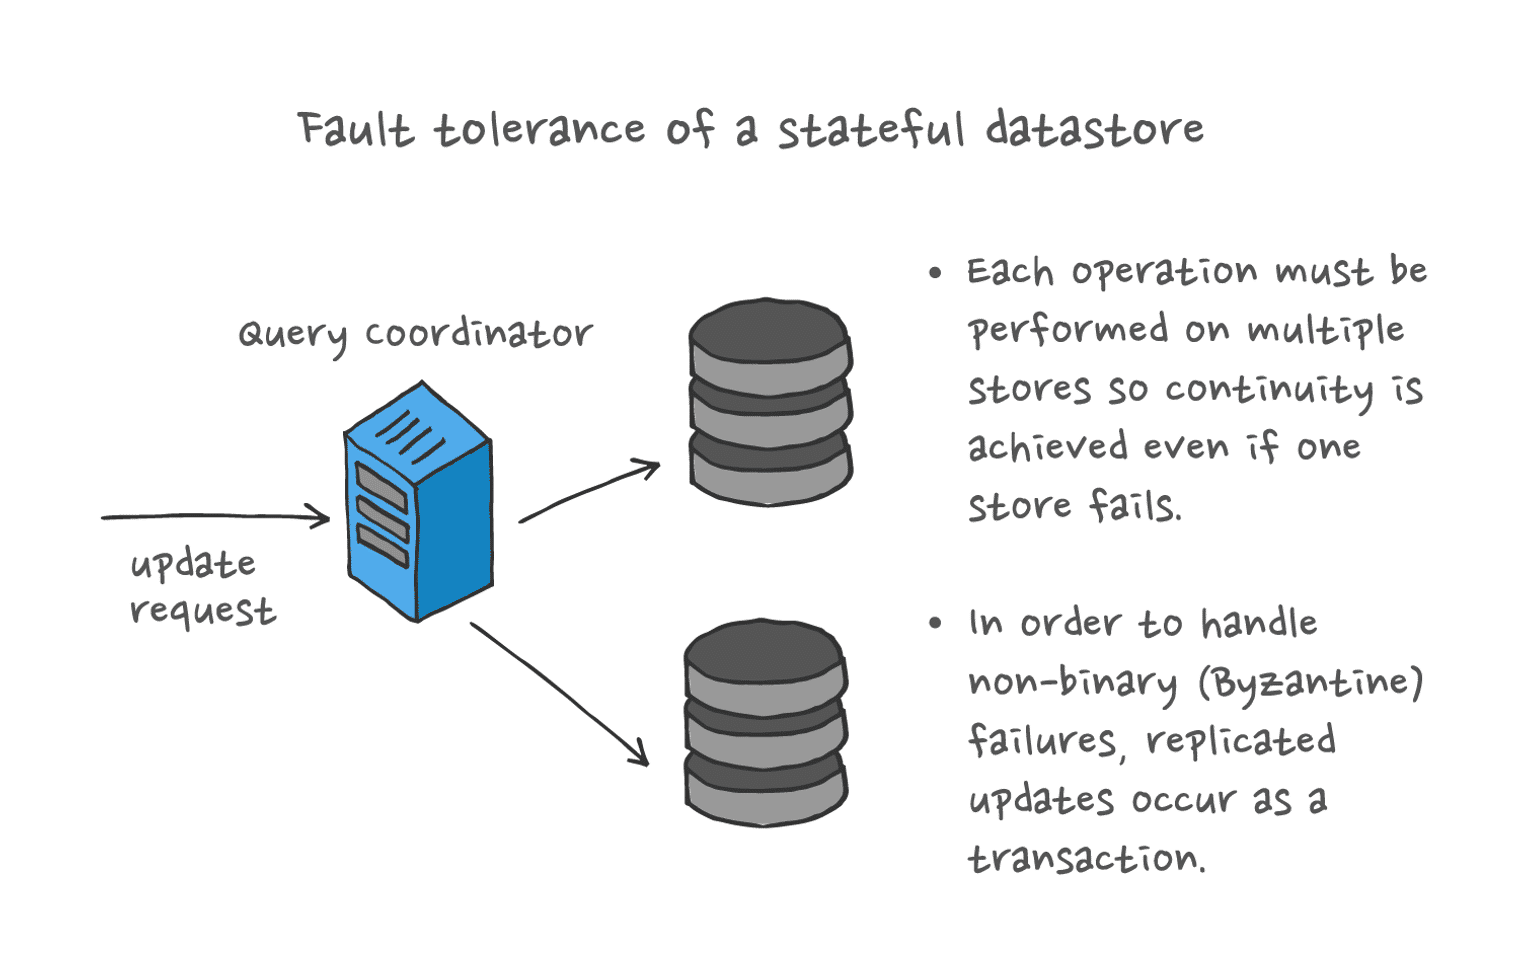 Fault tolerance of a stateful datastore: a query coordinator handles non-binary (Byzantine) failures via transactional replication of updates on multpile stores.